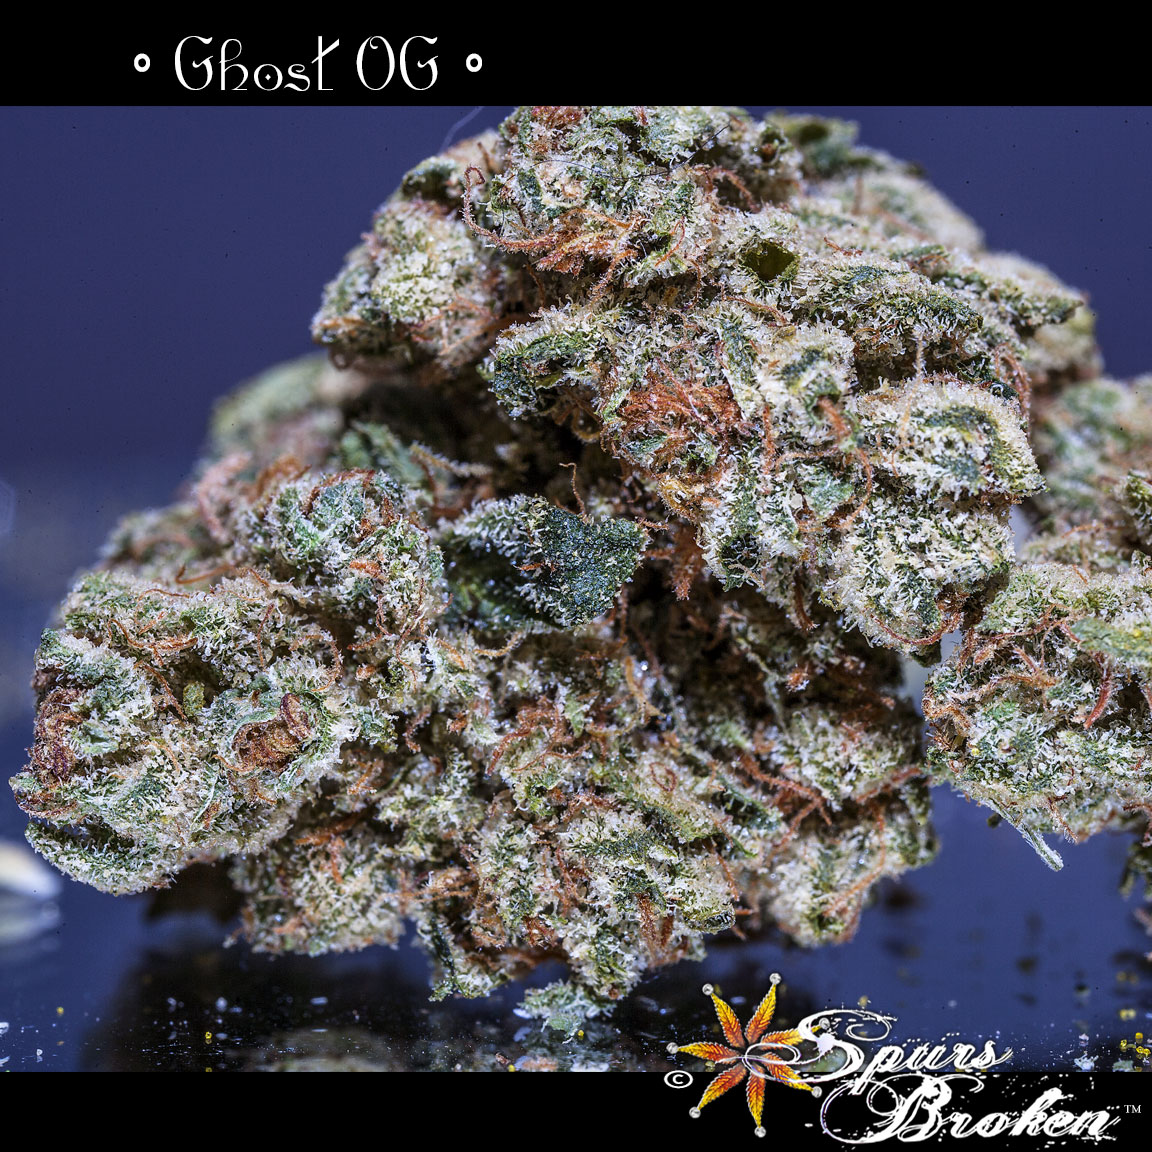 Ghost OG -Cannabis Macro Photography by Spurs Broken (Robert R. Sanders)